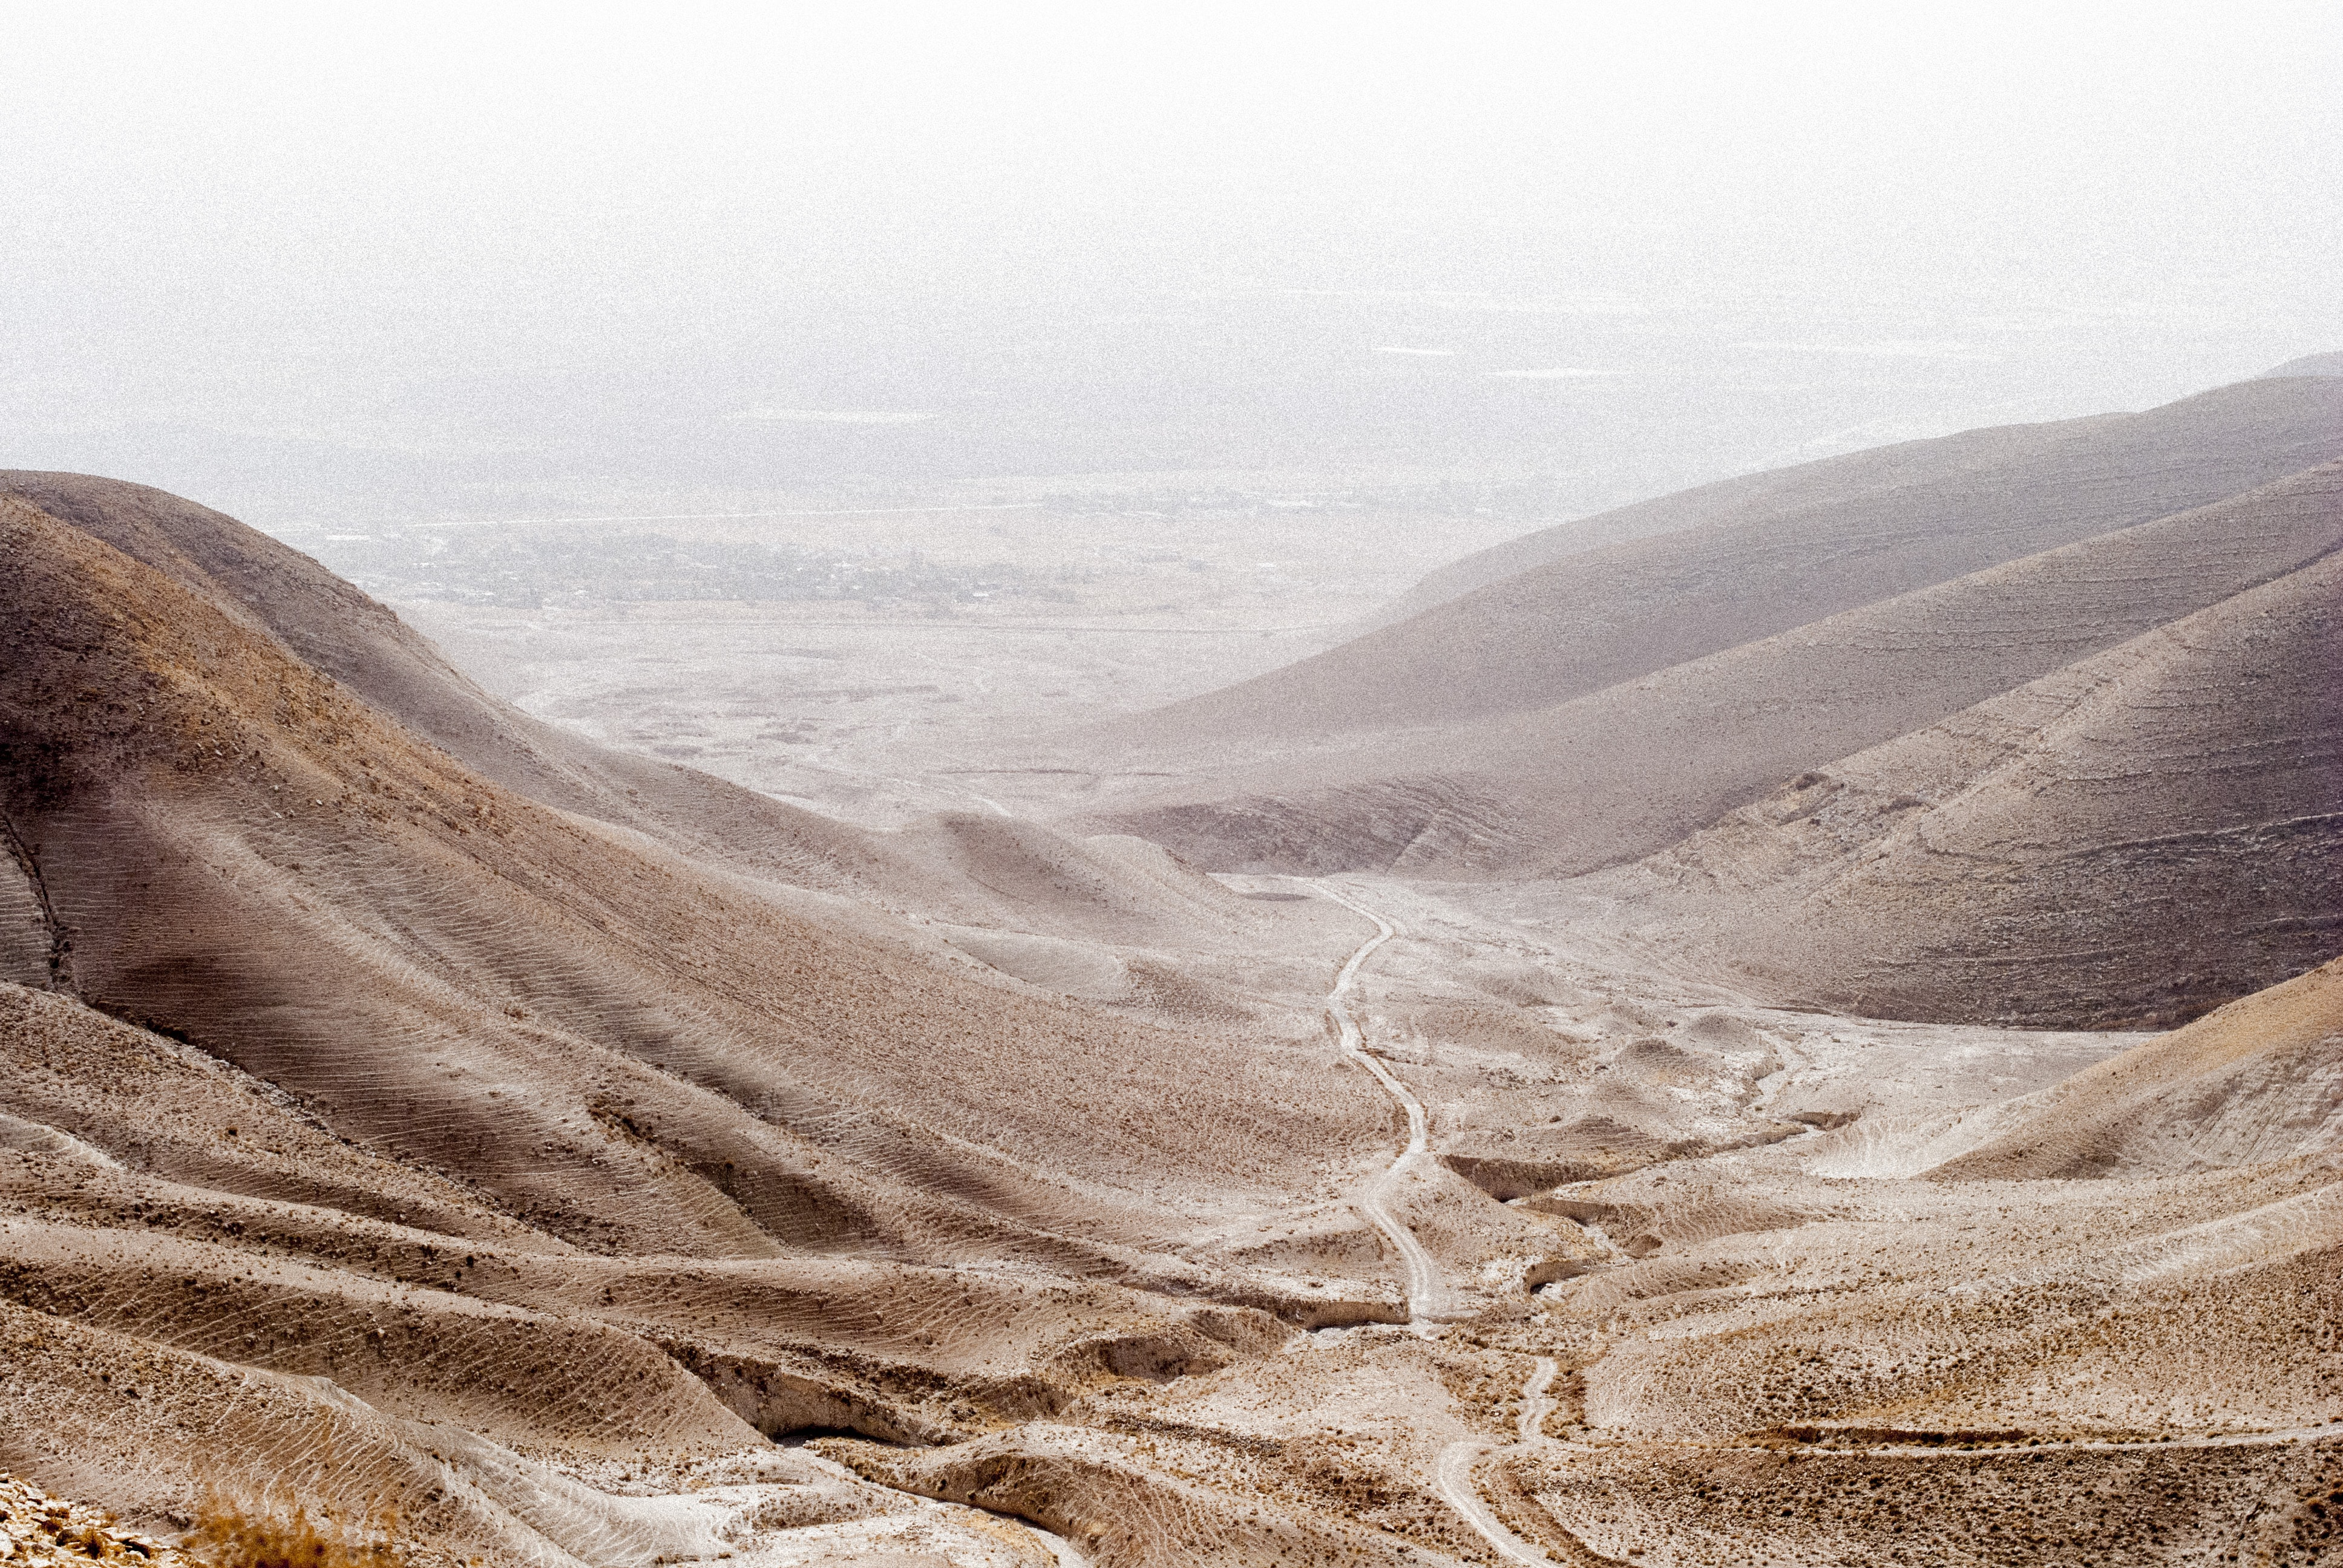 Desert mountains on an overcast day in Jordan Valley